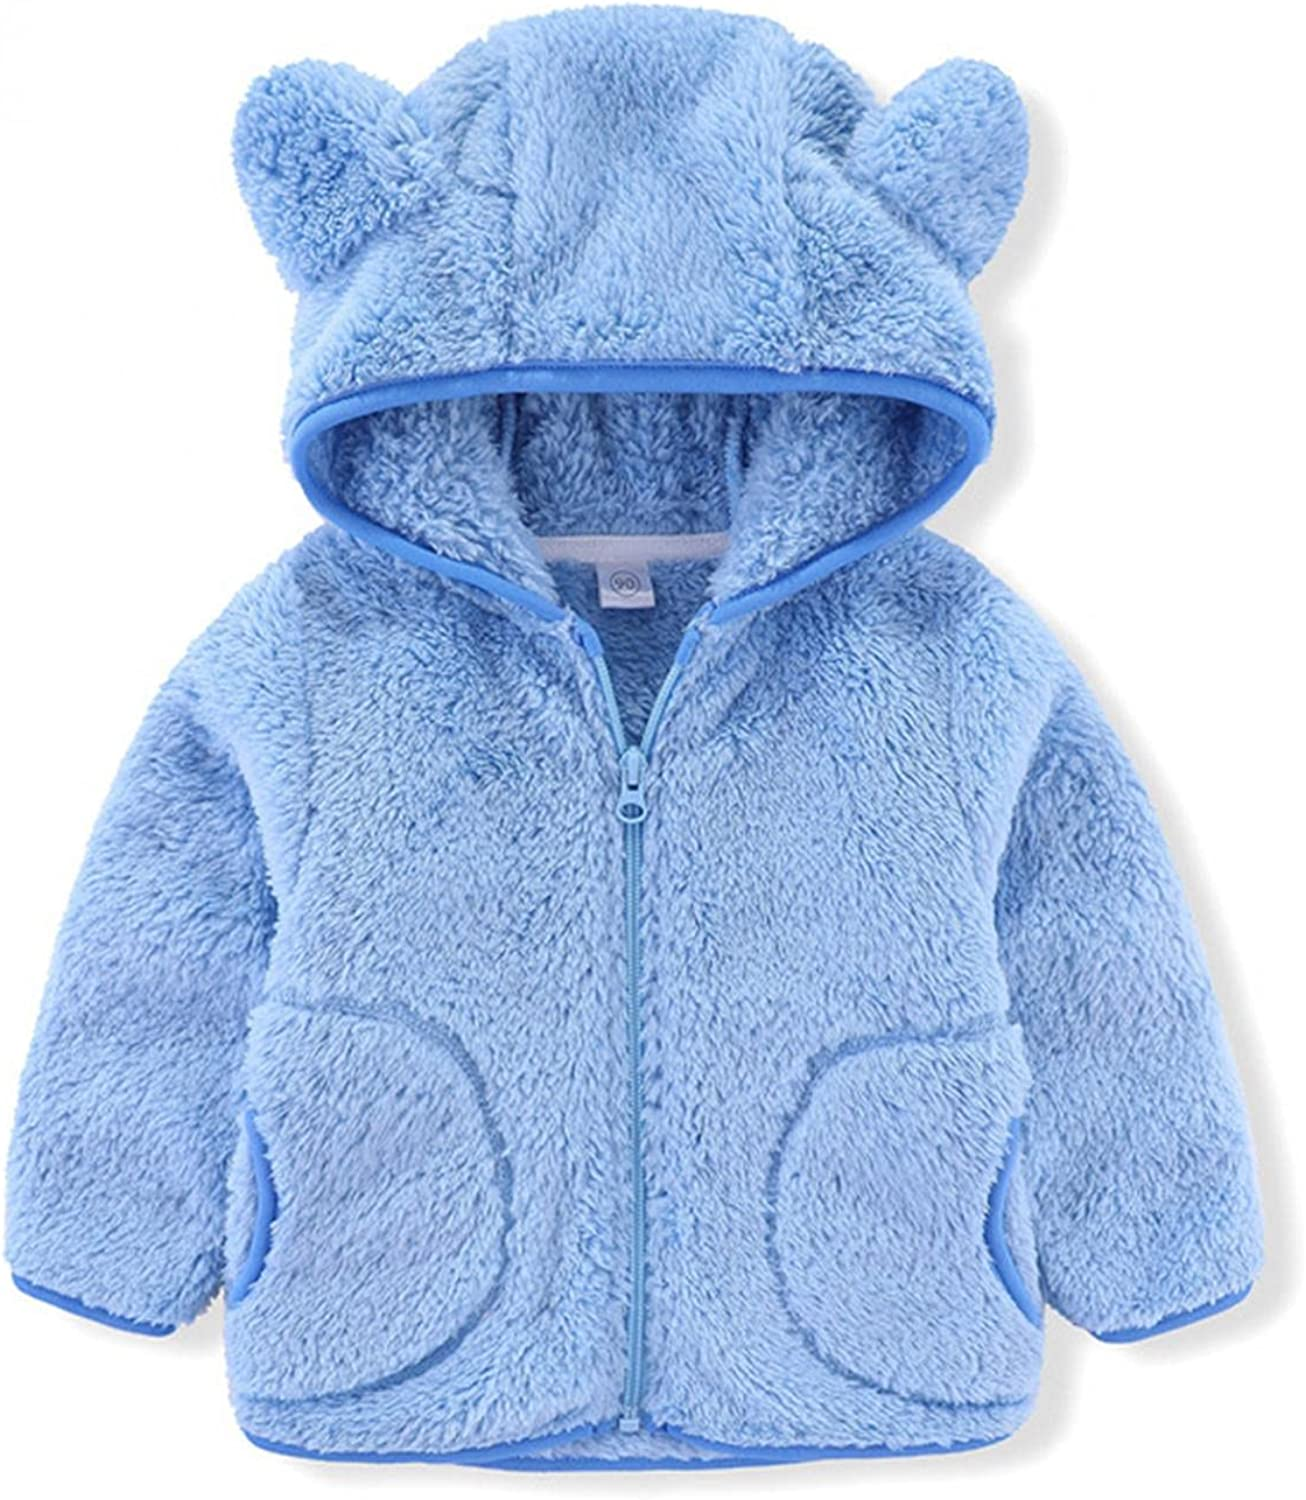 Toddler Hooded Super beauty product restock quality top! Jacket Girl Boy Top Winter Sweatshirt Outwea Warm Some reservation